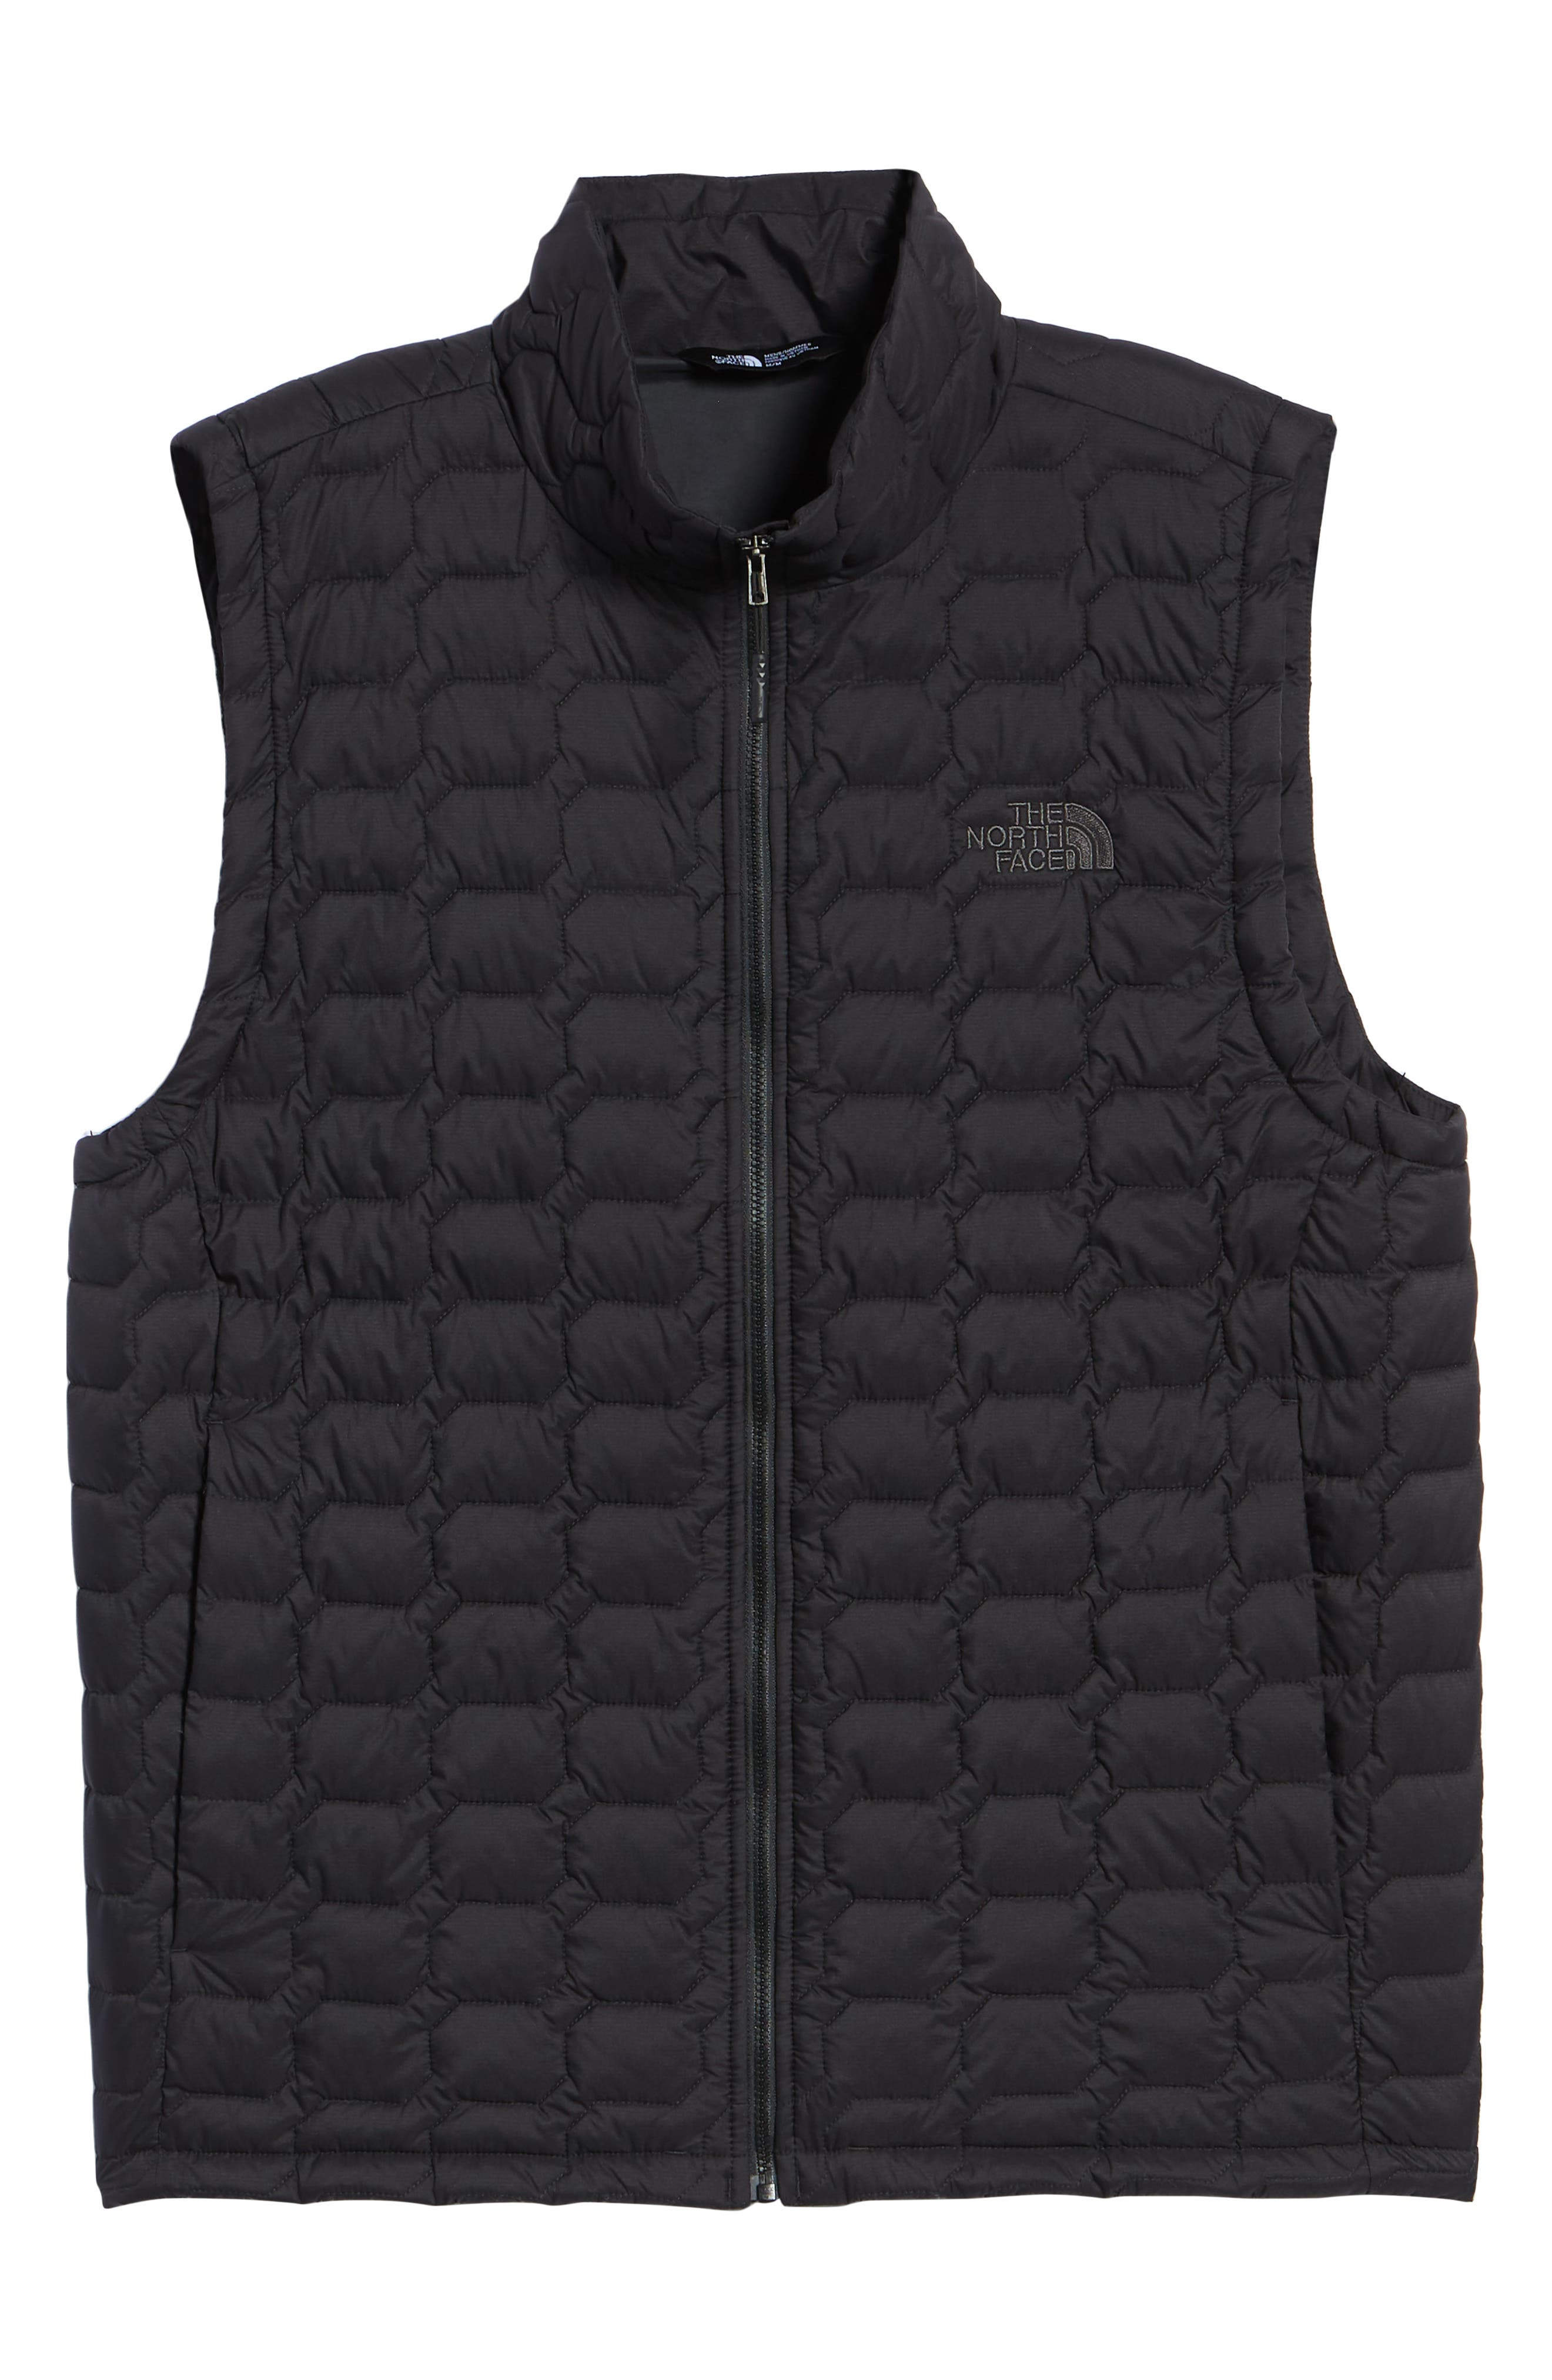 THE NORTH FACE, Thermoball<sup>®</sup> PrimaLoft<sup>®</sup> Vest, Alternate thumbnail 6, color, TNF BLACK MATTE